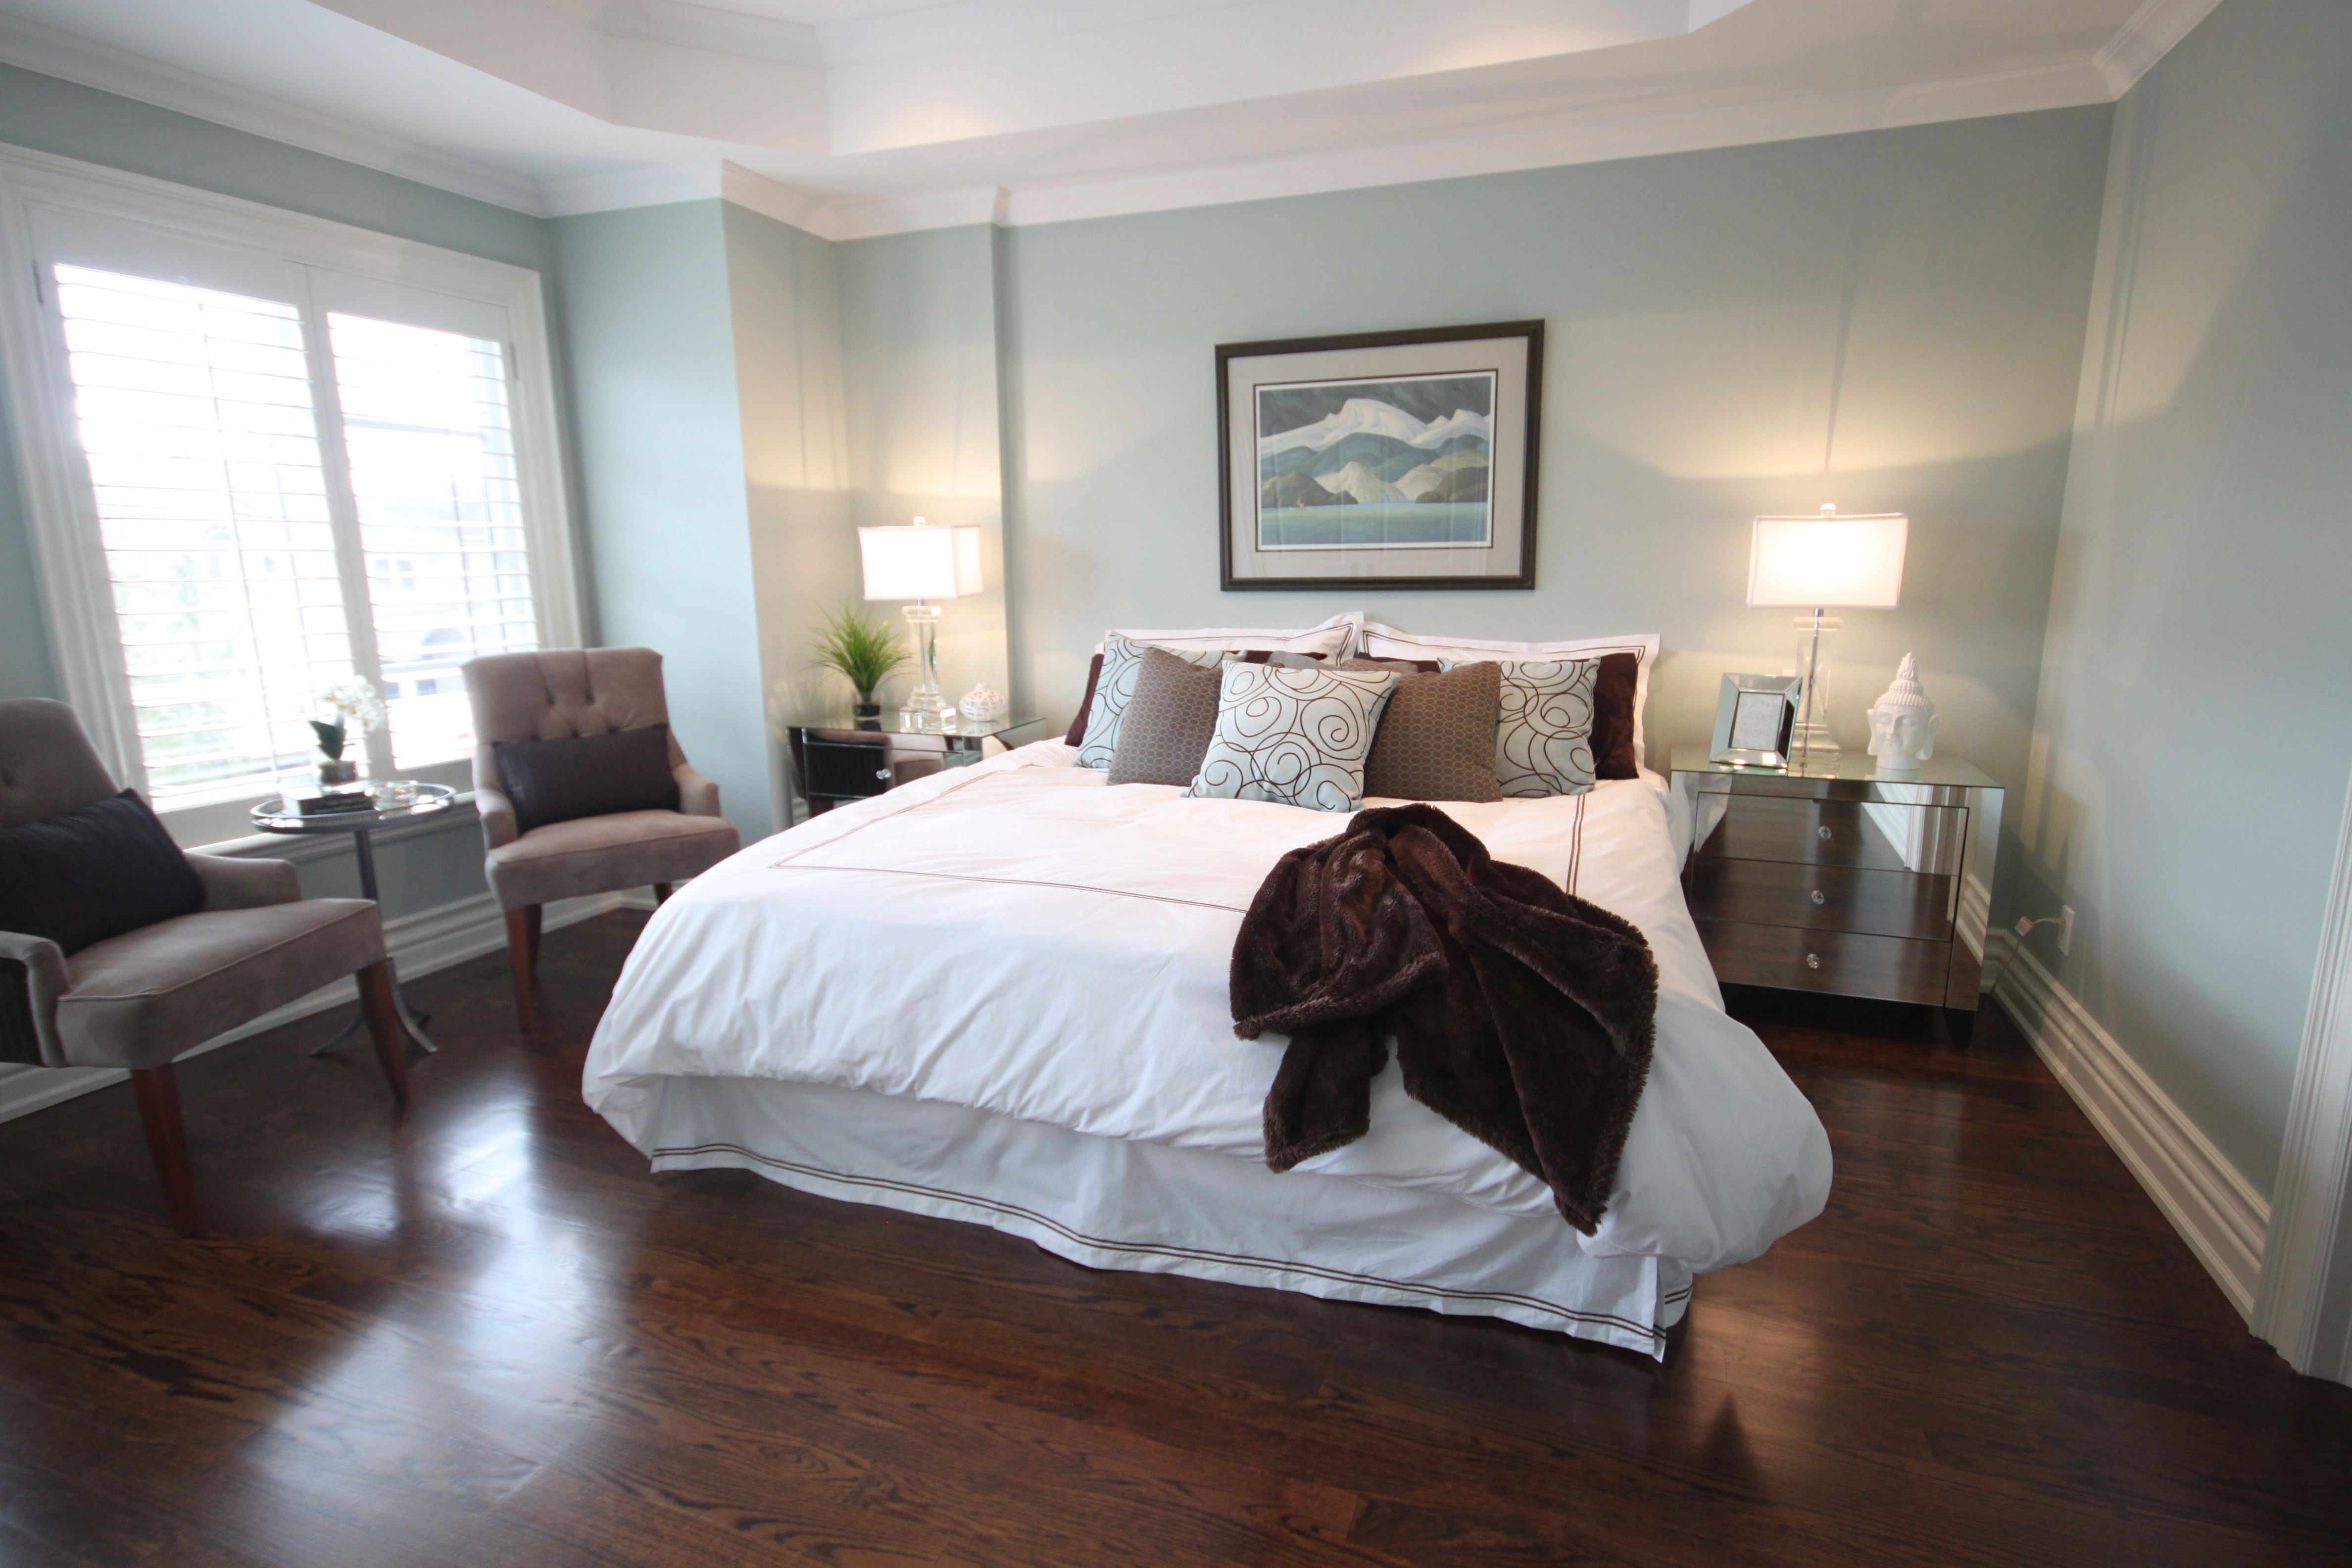 Gorgeous Guest Bedroom. Walls Are Silver Marlin 2139-50